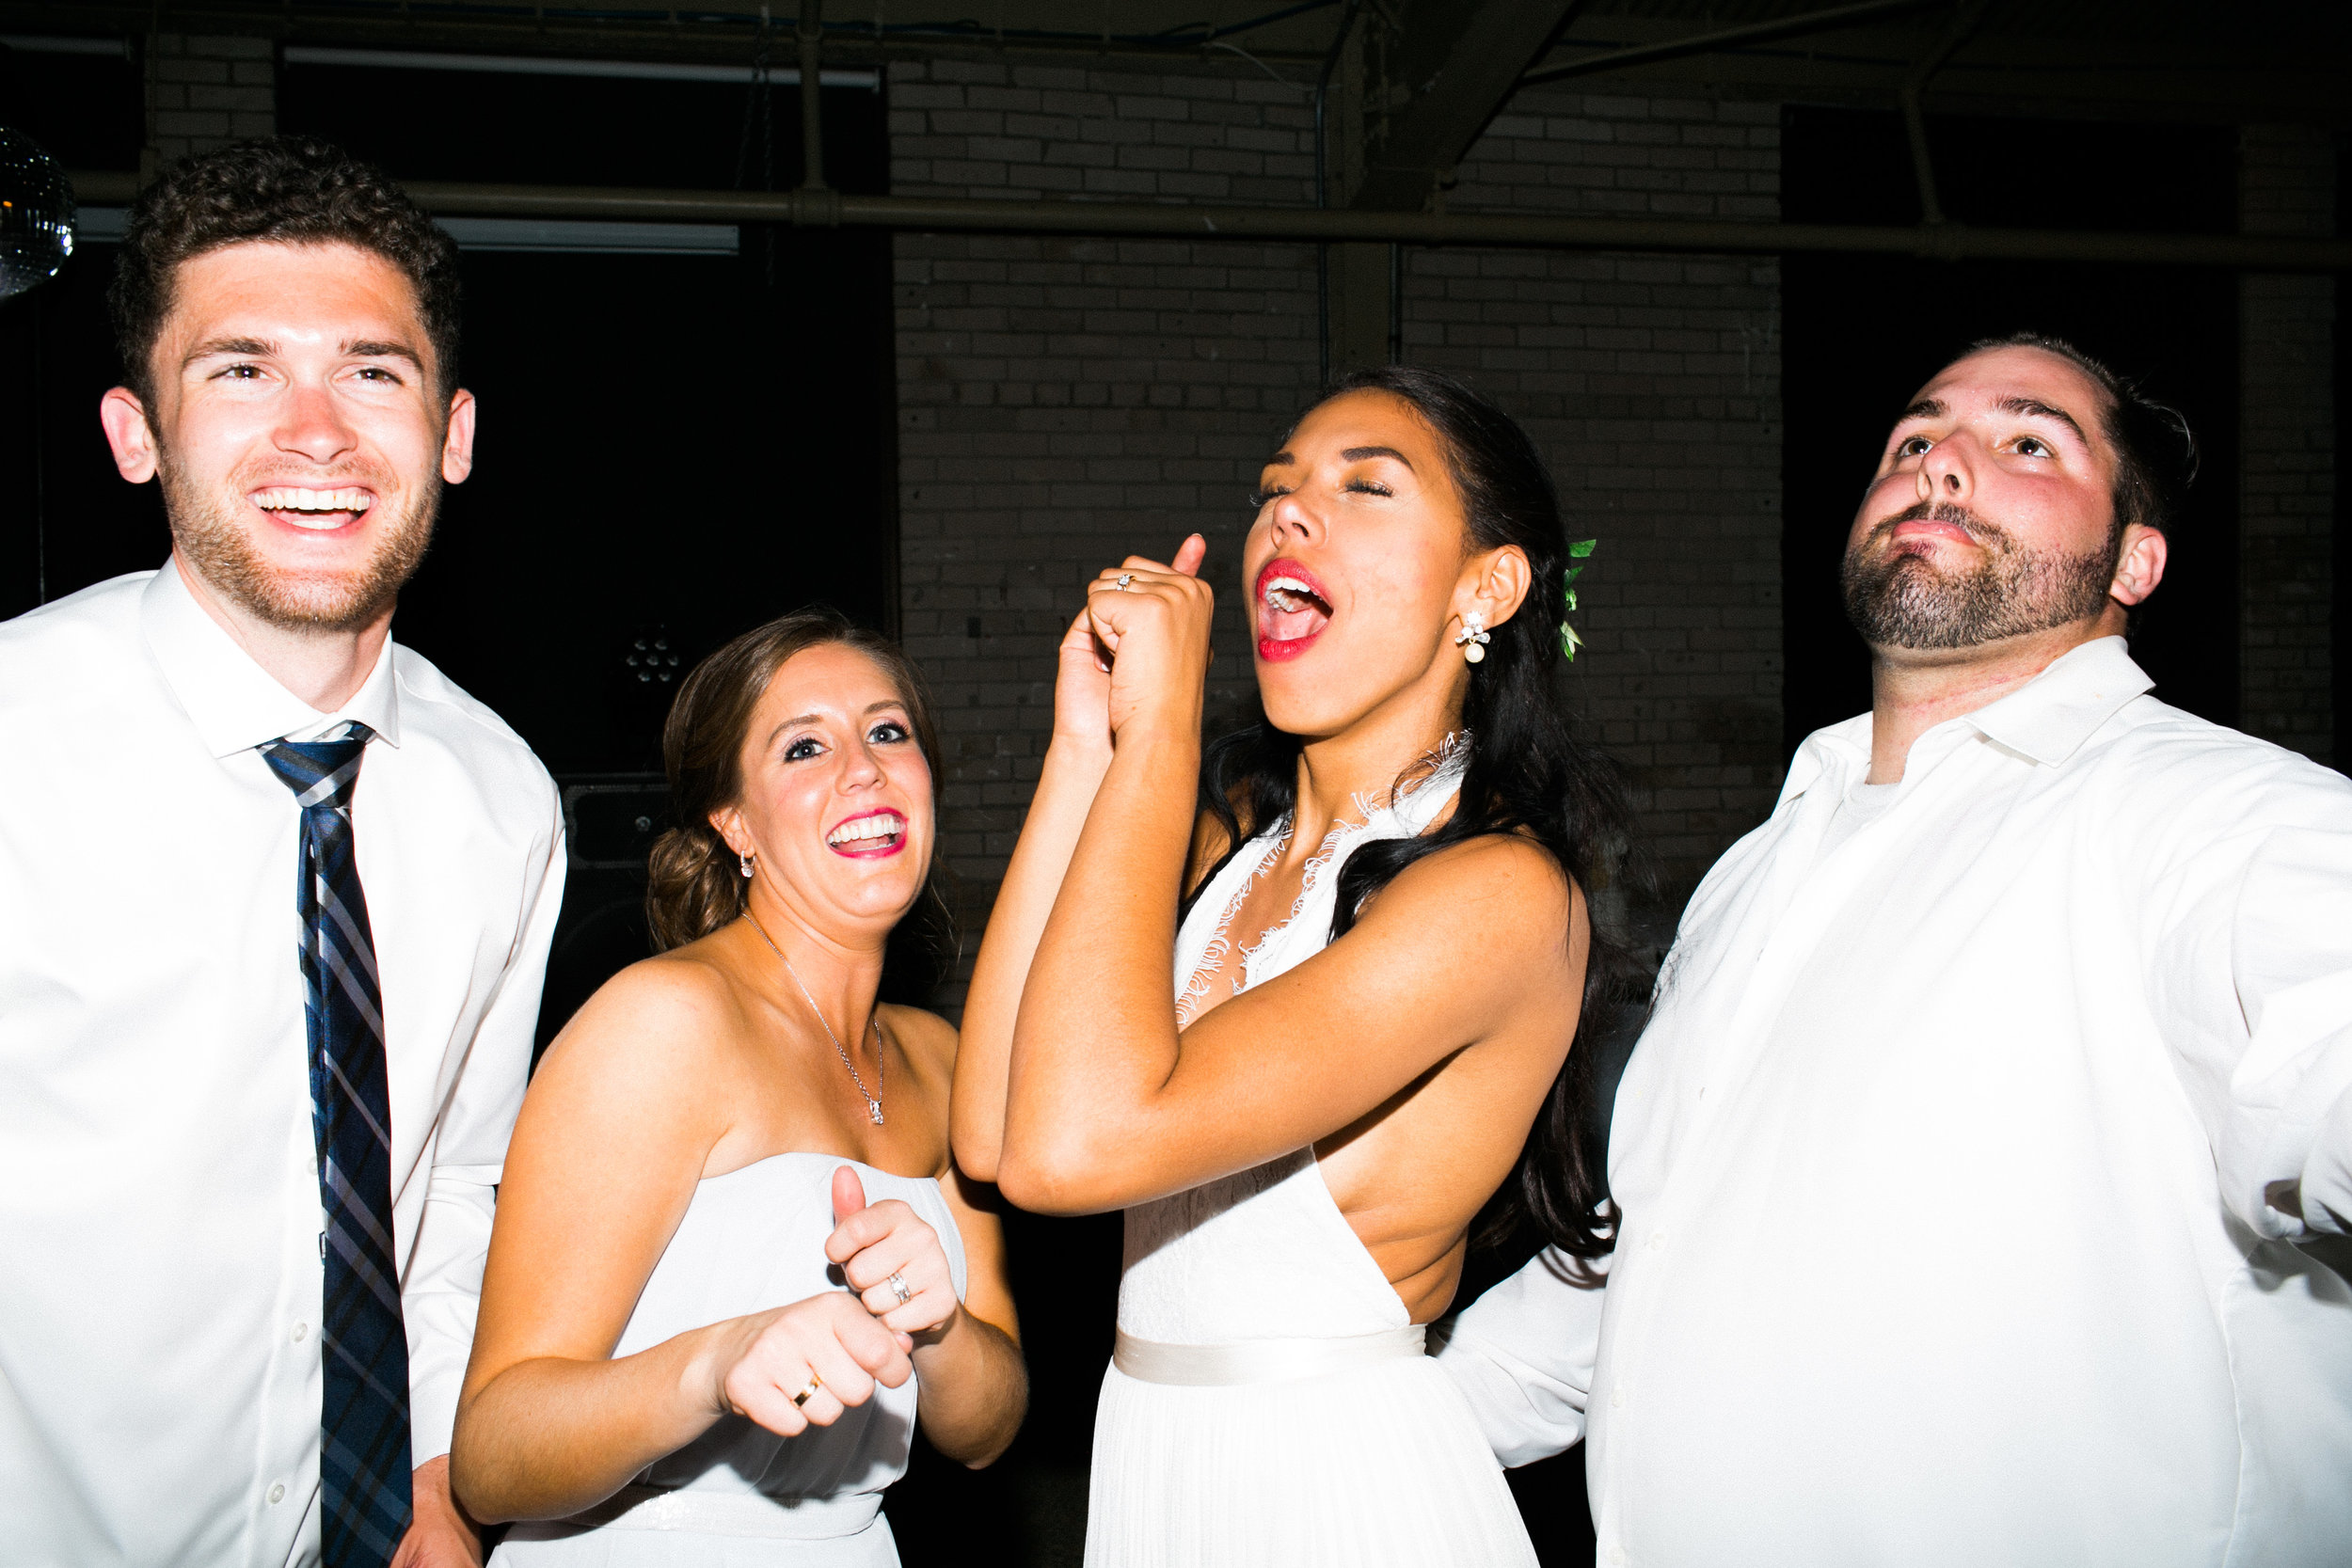 mayden_photography_weddings-109.jpg